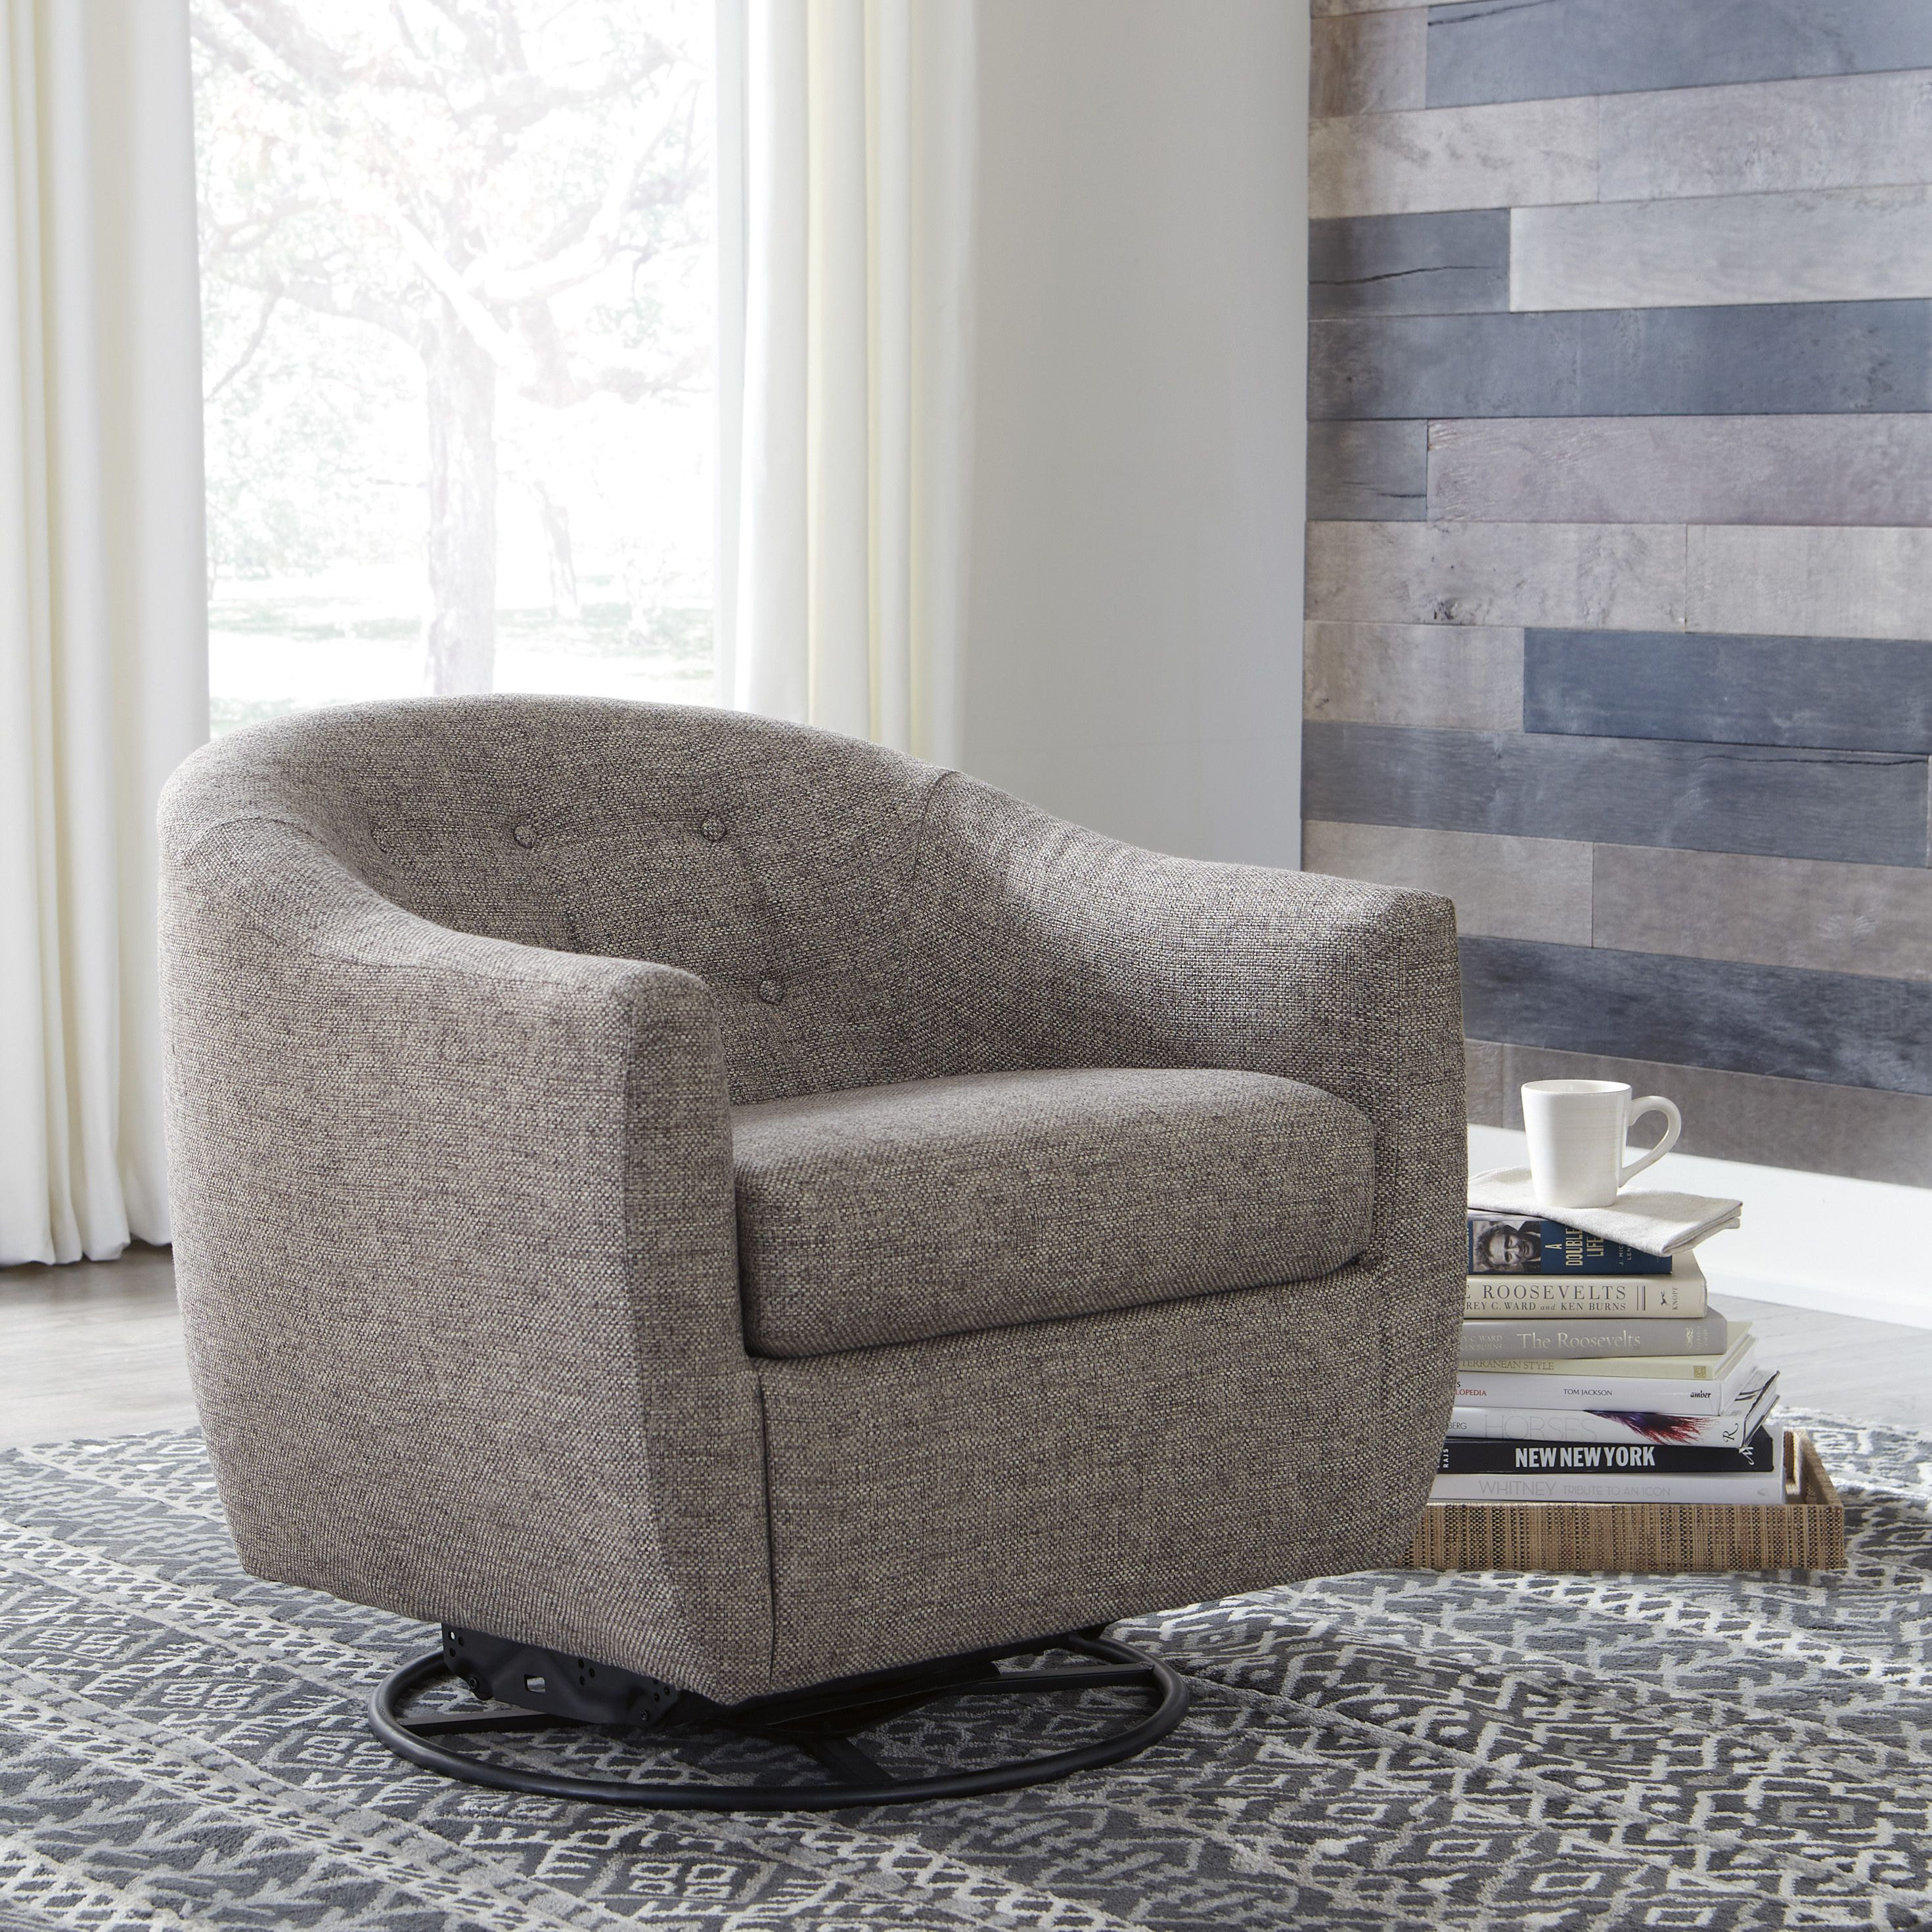 Upshur Glider Accent Chair in 2020 Accent chairs, Accent